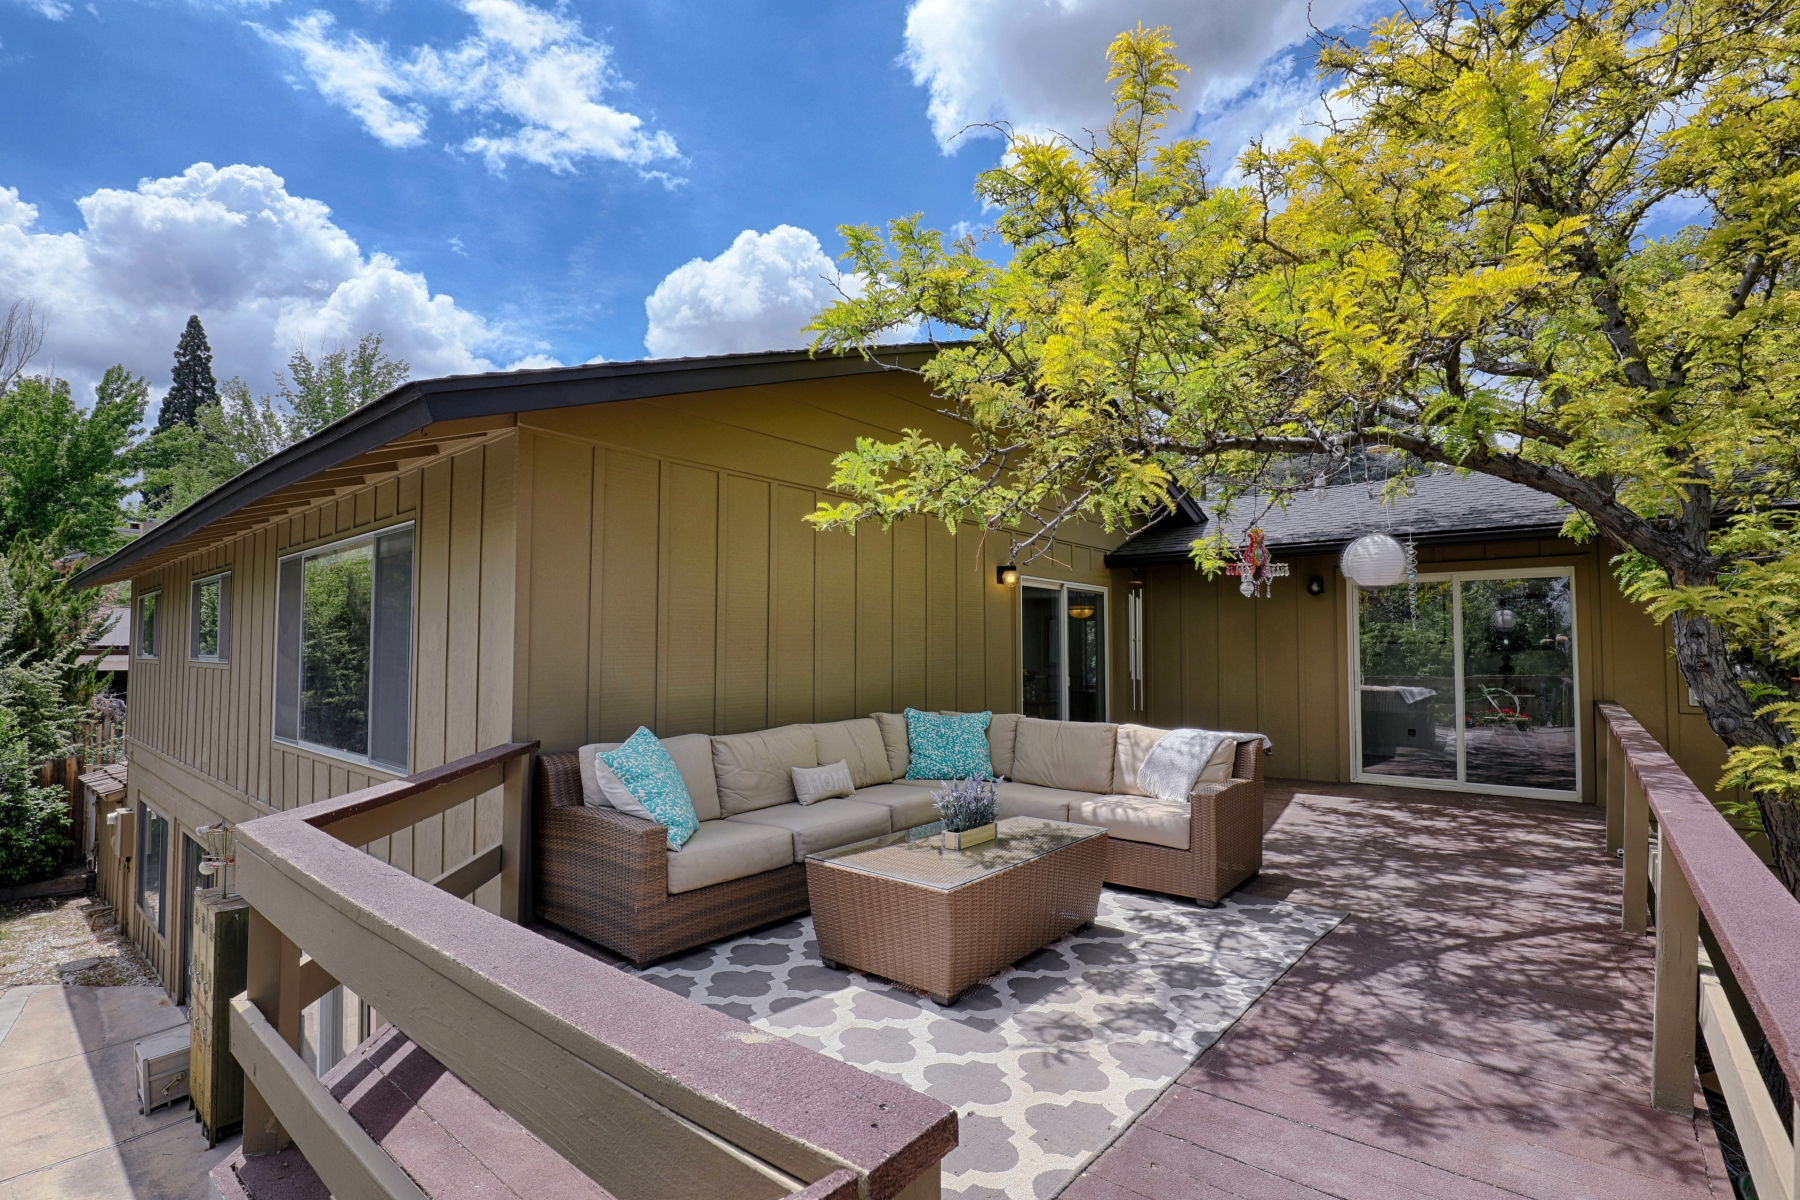 Single Family Home for Active at 2110 Skyline Blvd., Reno, Nevada 2110 Skyline Blvd. Reno, Nevada 89509 United States